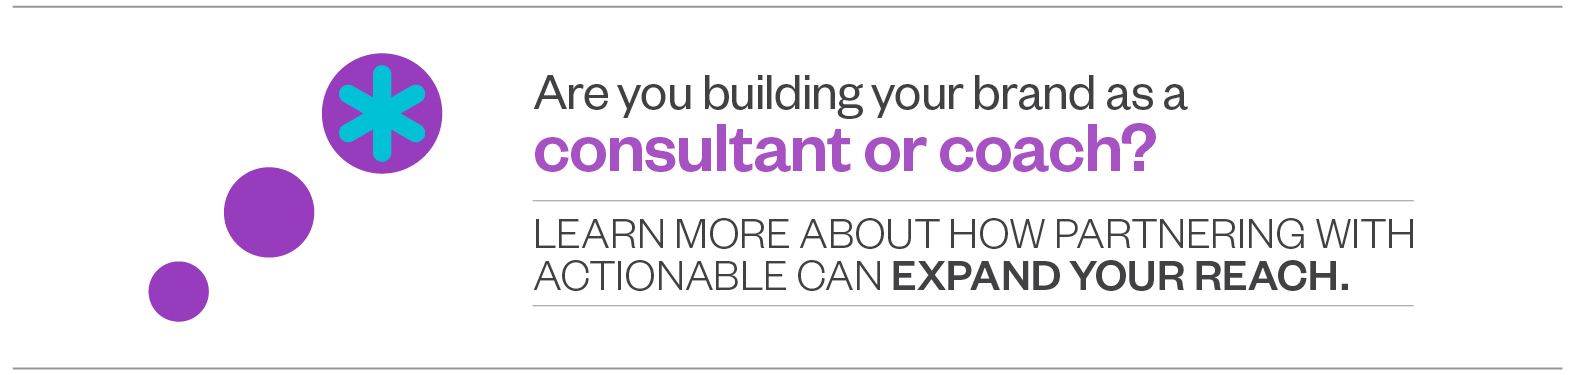 Build Your Consulting Brand